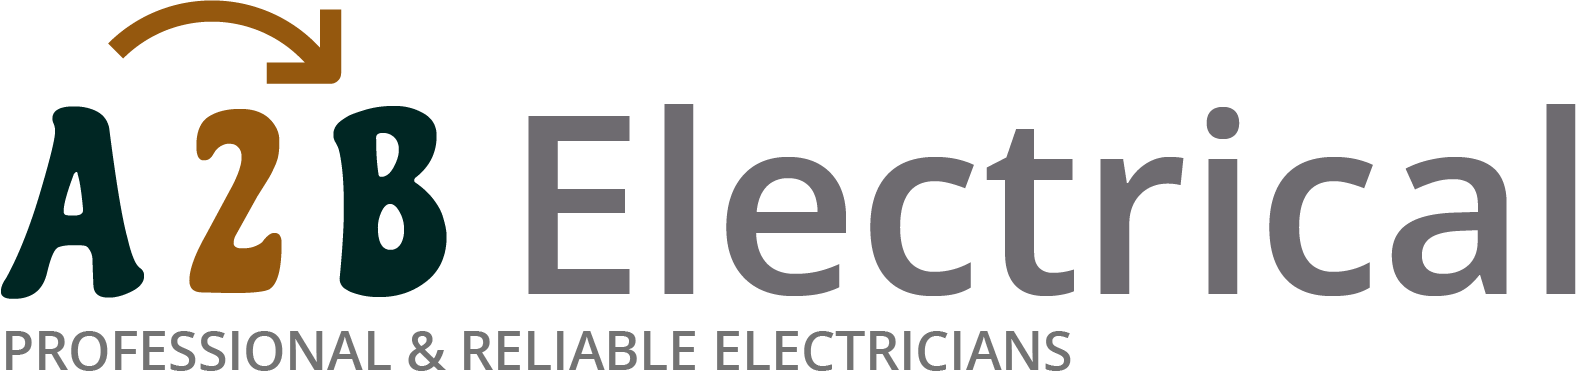 If you have electrical wiring problems in Isleworth, we can provide an electrician to have a look for you.